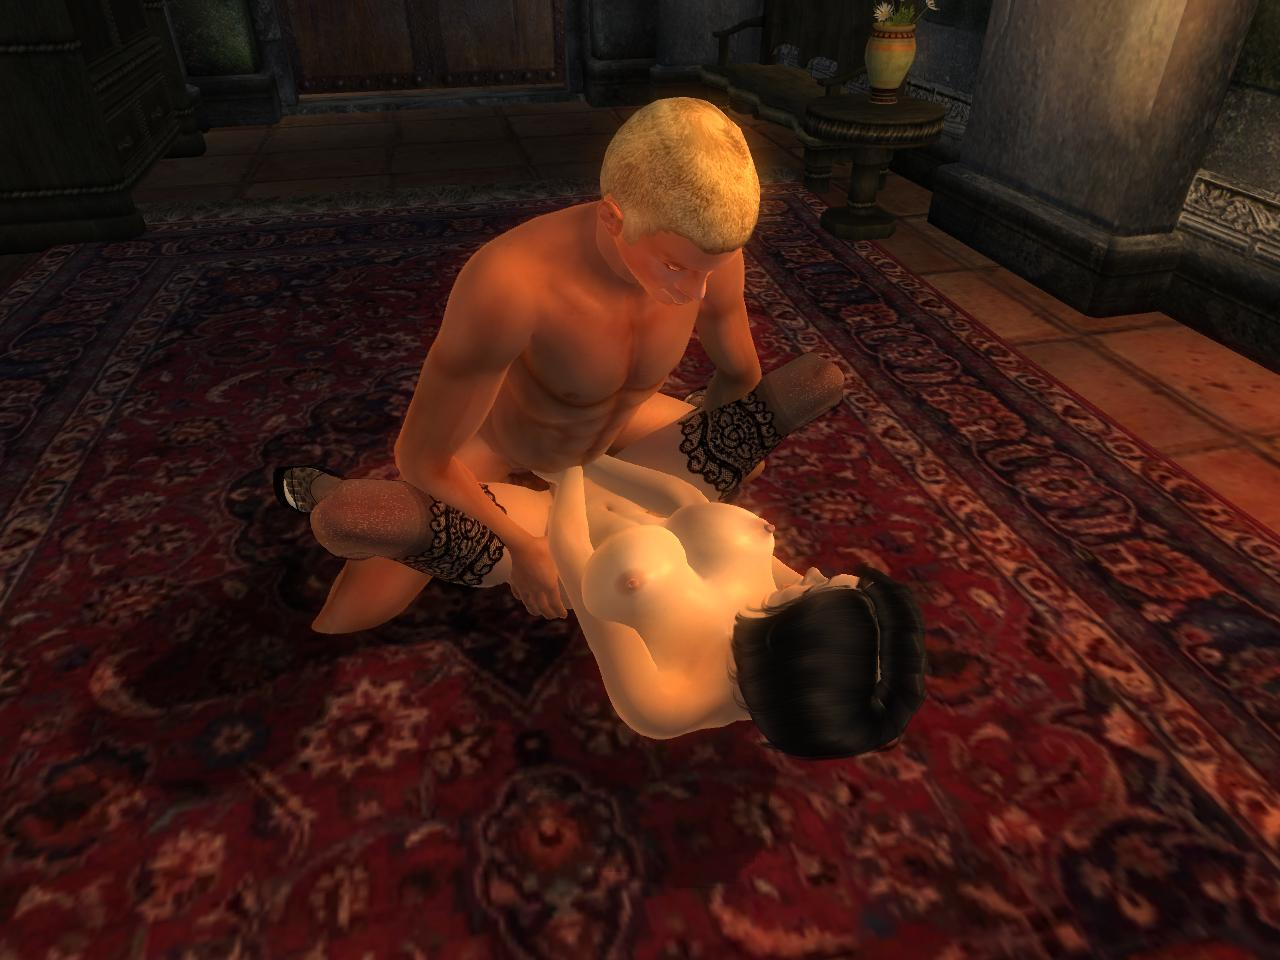 Oblivion aniamtions sex mods naked scenes